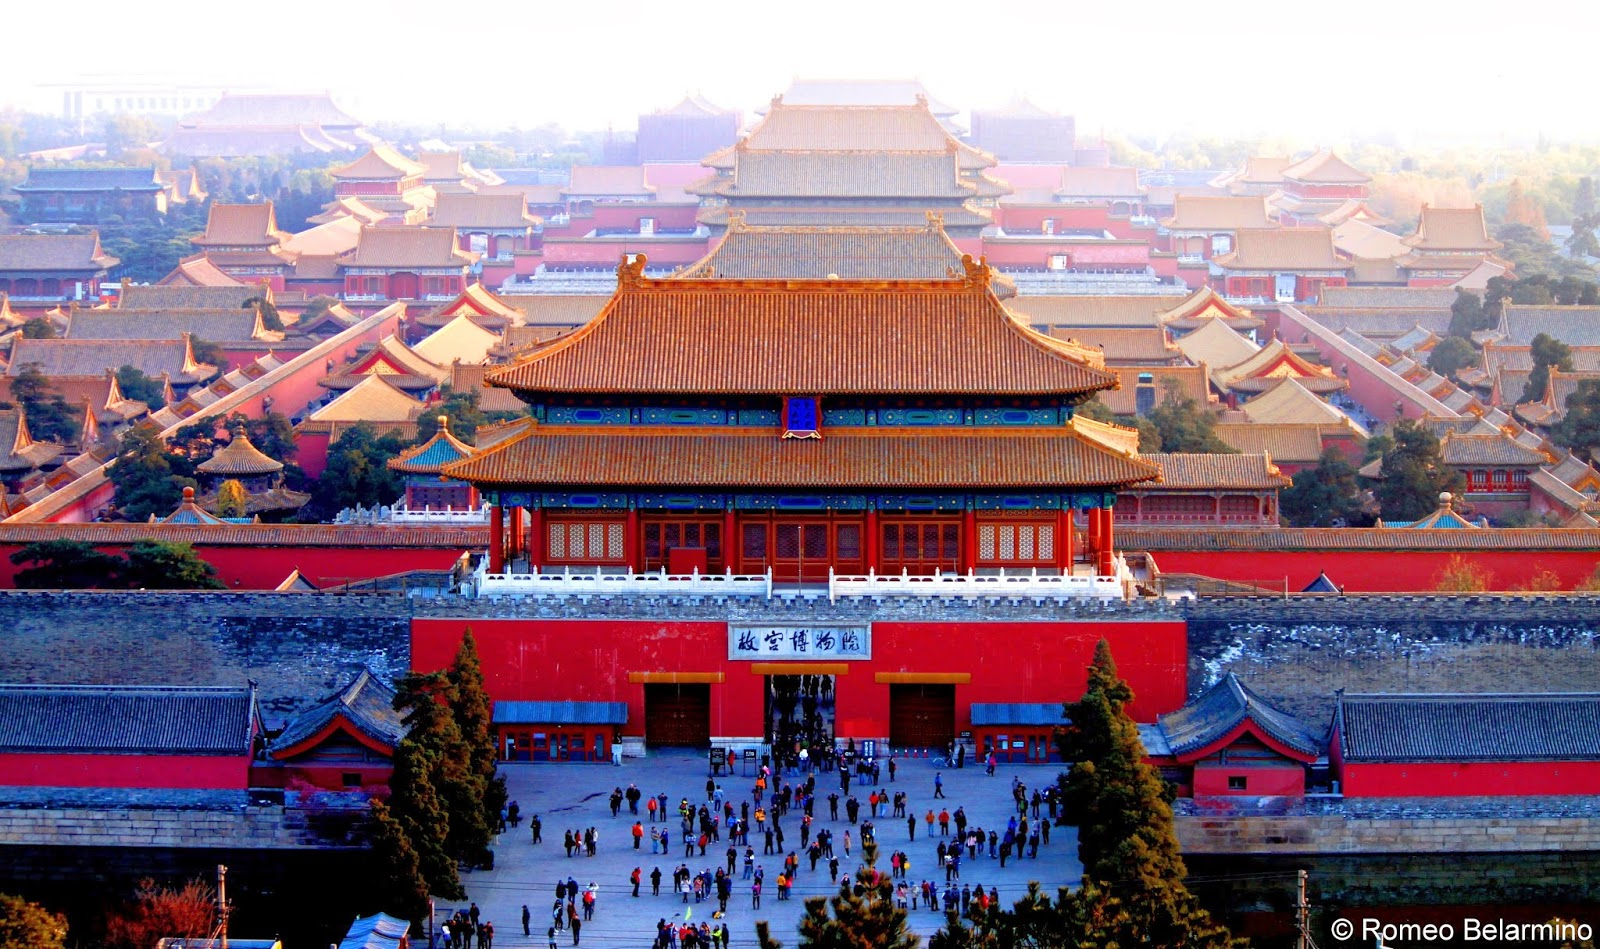 Overhead View of the Forbidden City Beijing China